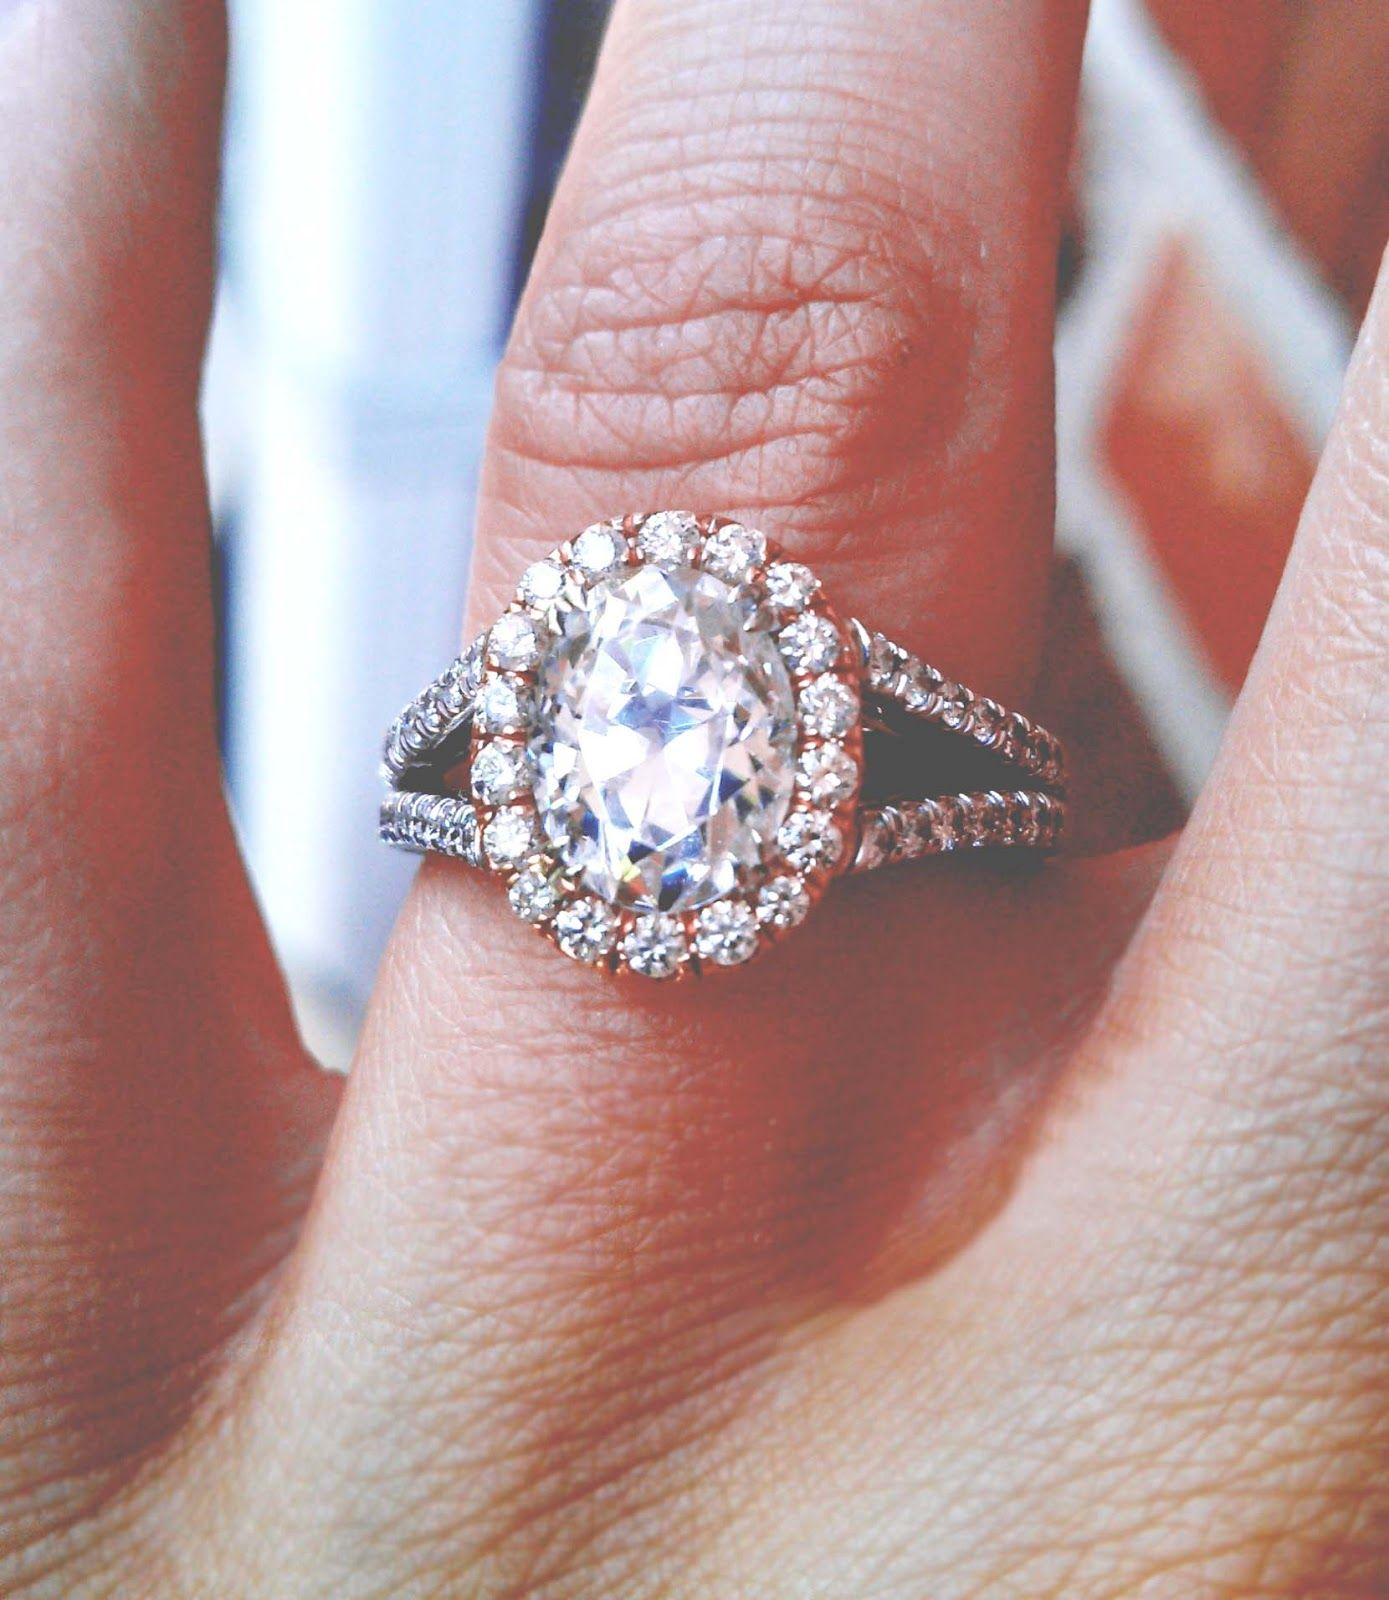 Pin by Dana on Bling Wedding rings engagement